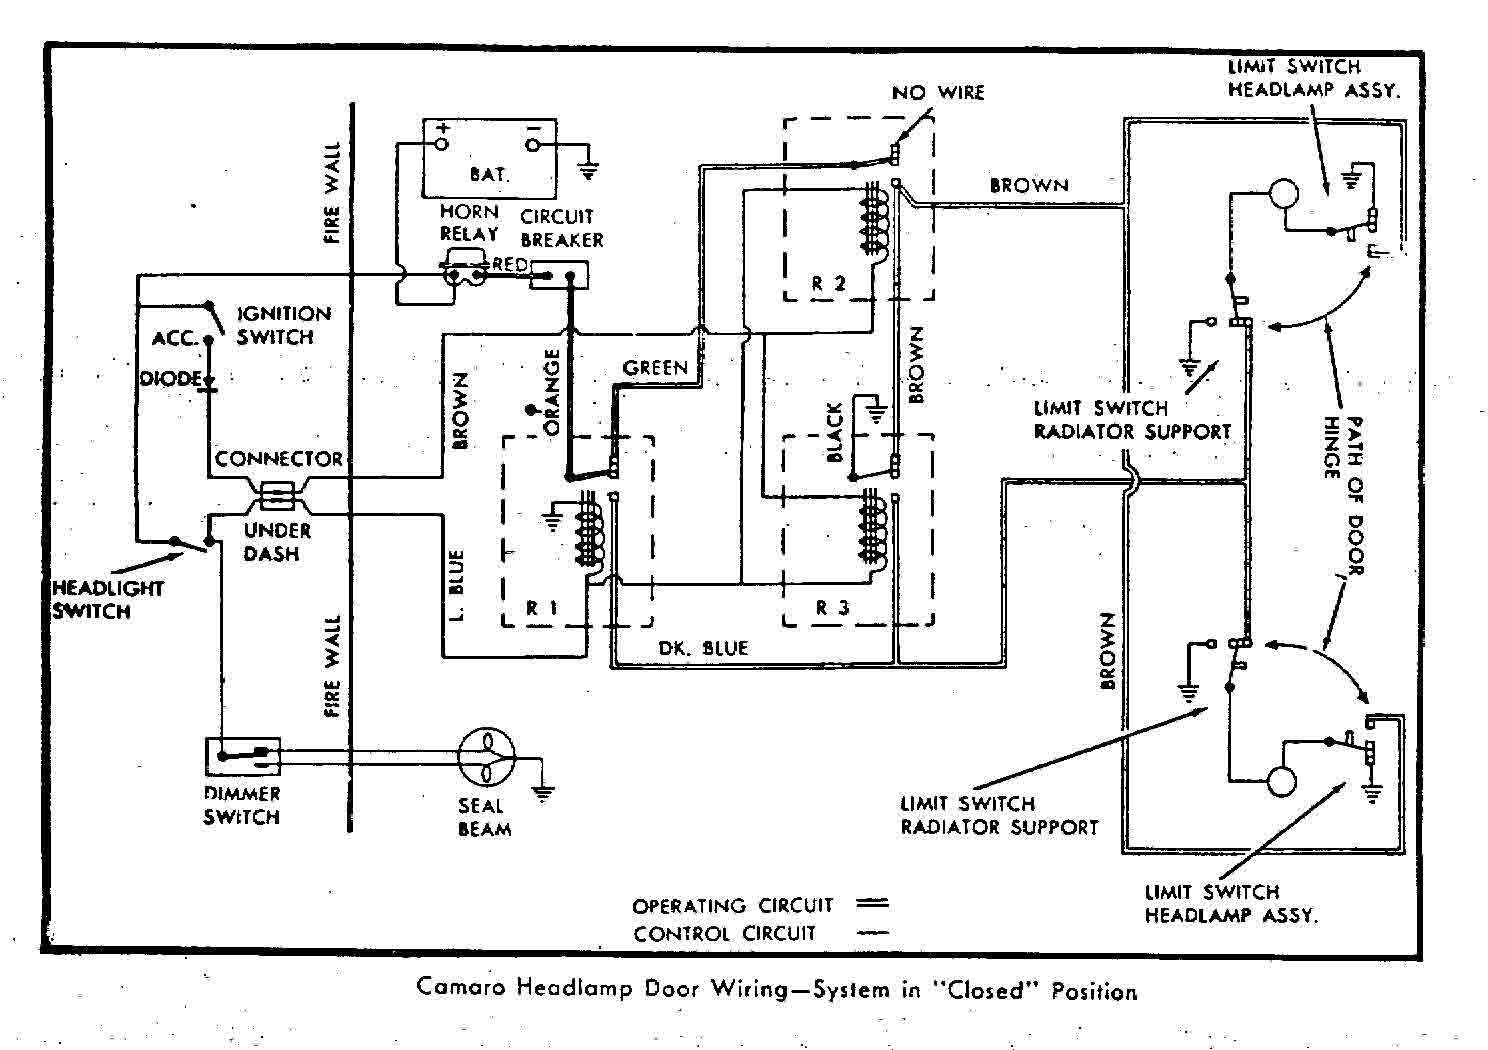 889 1981 Firebird Fuse Box Panel Diagram | Wiring Resources  Camaro Fuse Box Diagram on 81 camaro frame, 81 camaro wiring harness, 81 camaro spindle, 81 camaro engine, 81 camaro ac compressor, 81 camaro gas tank,